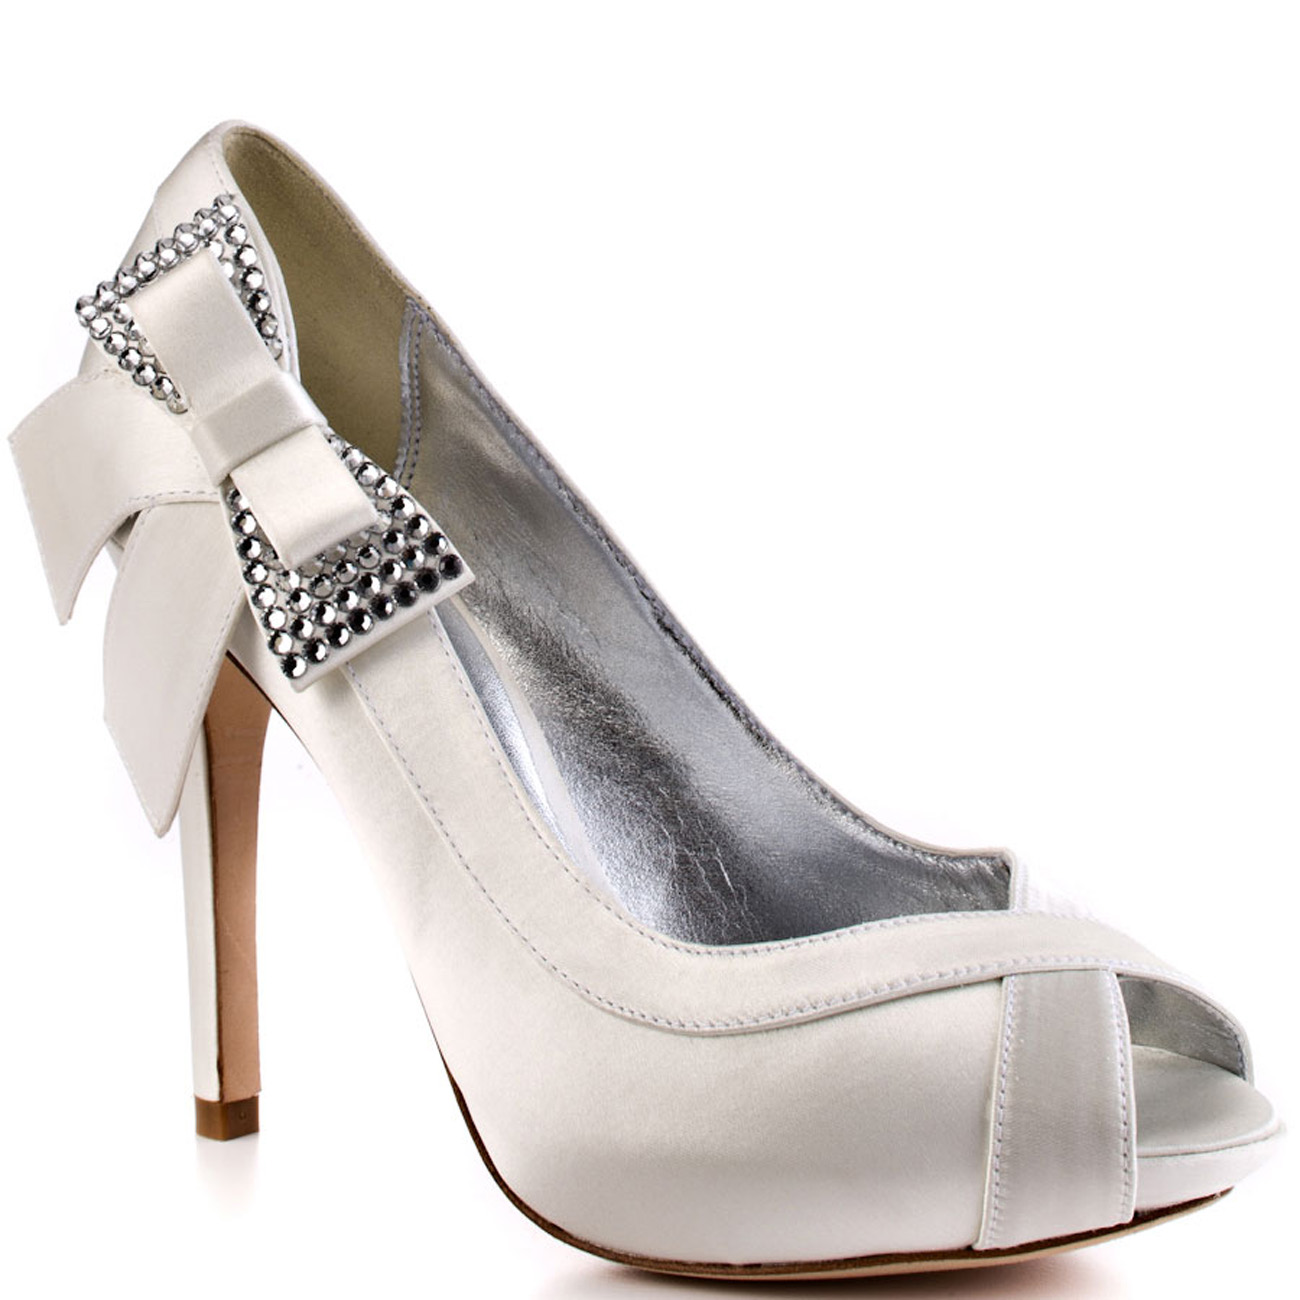 7986611746979 Details about Bourne Alexa Bridal Shoes RRP162 3-8 Ivory Diamante Crystal  Bow Peeptoe LUXURY